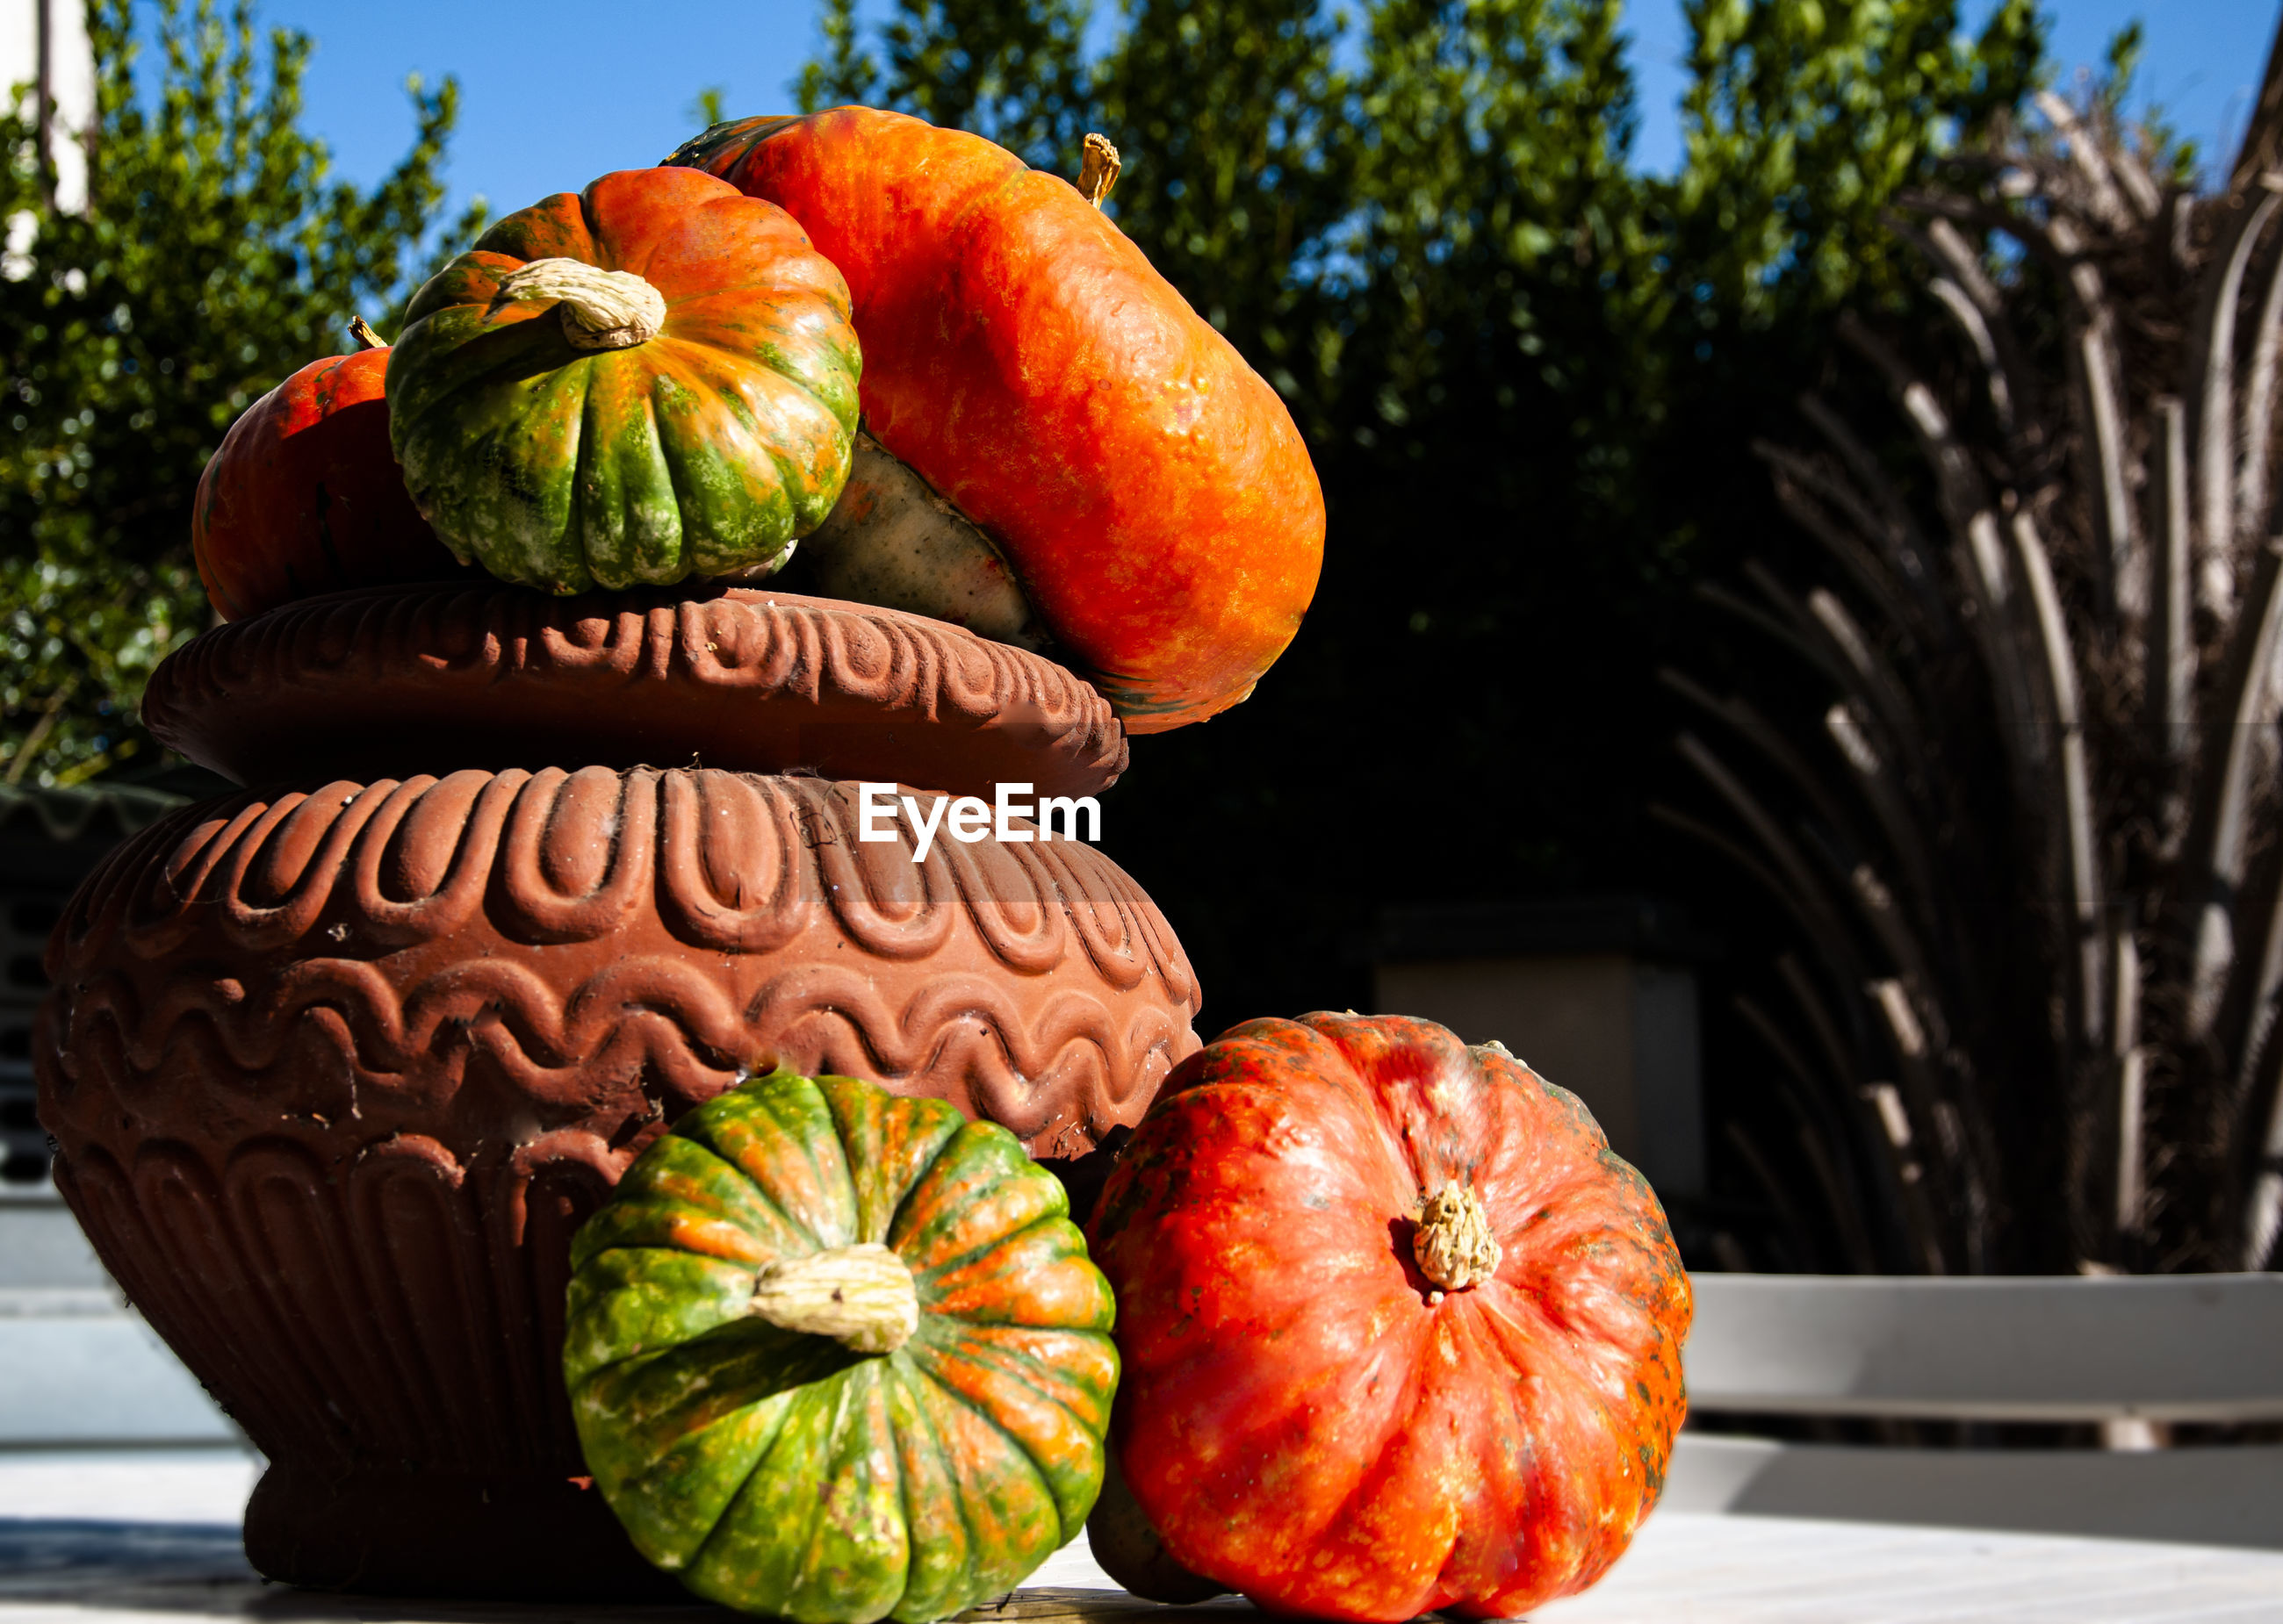 CLOSE-UP OF PUMPKINS IN GARDEN